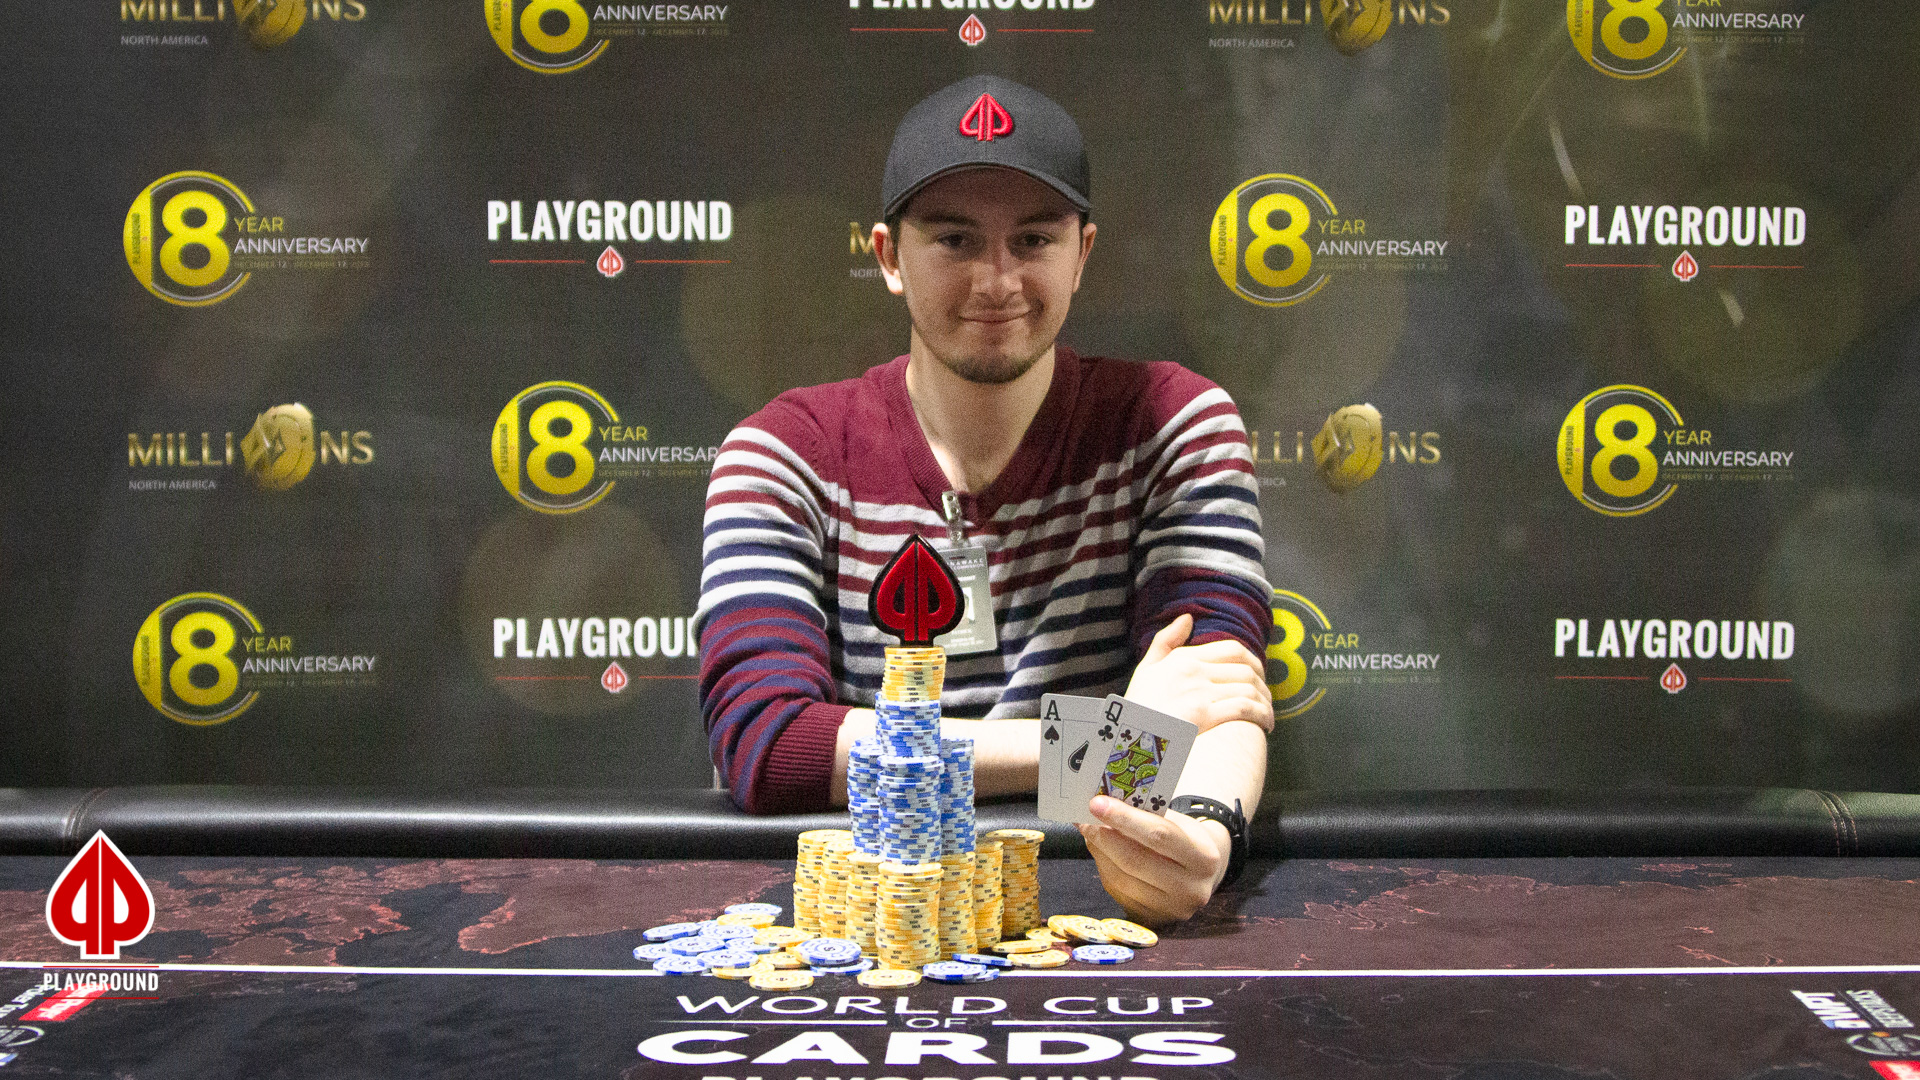 Patrick Filteau wins Event #1!